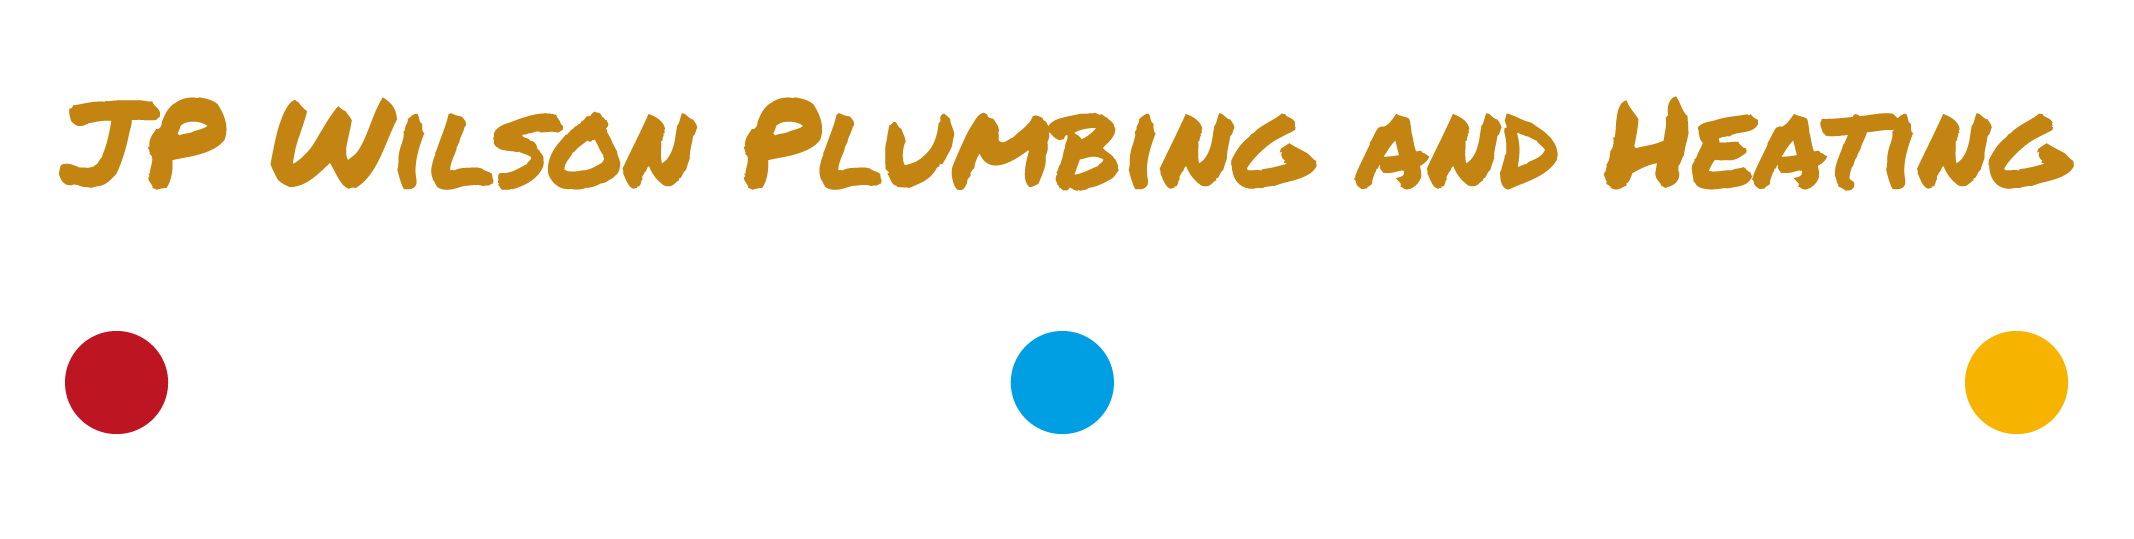 JP Wilson Plumbing & Heating